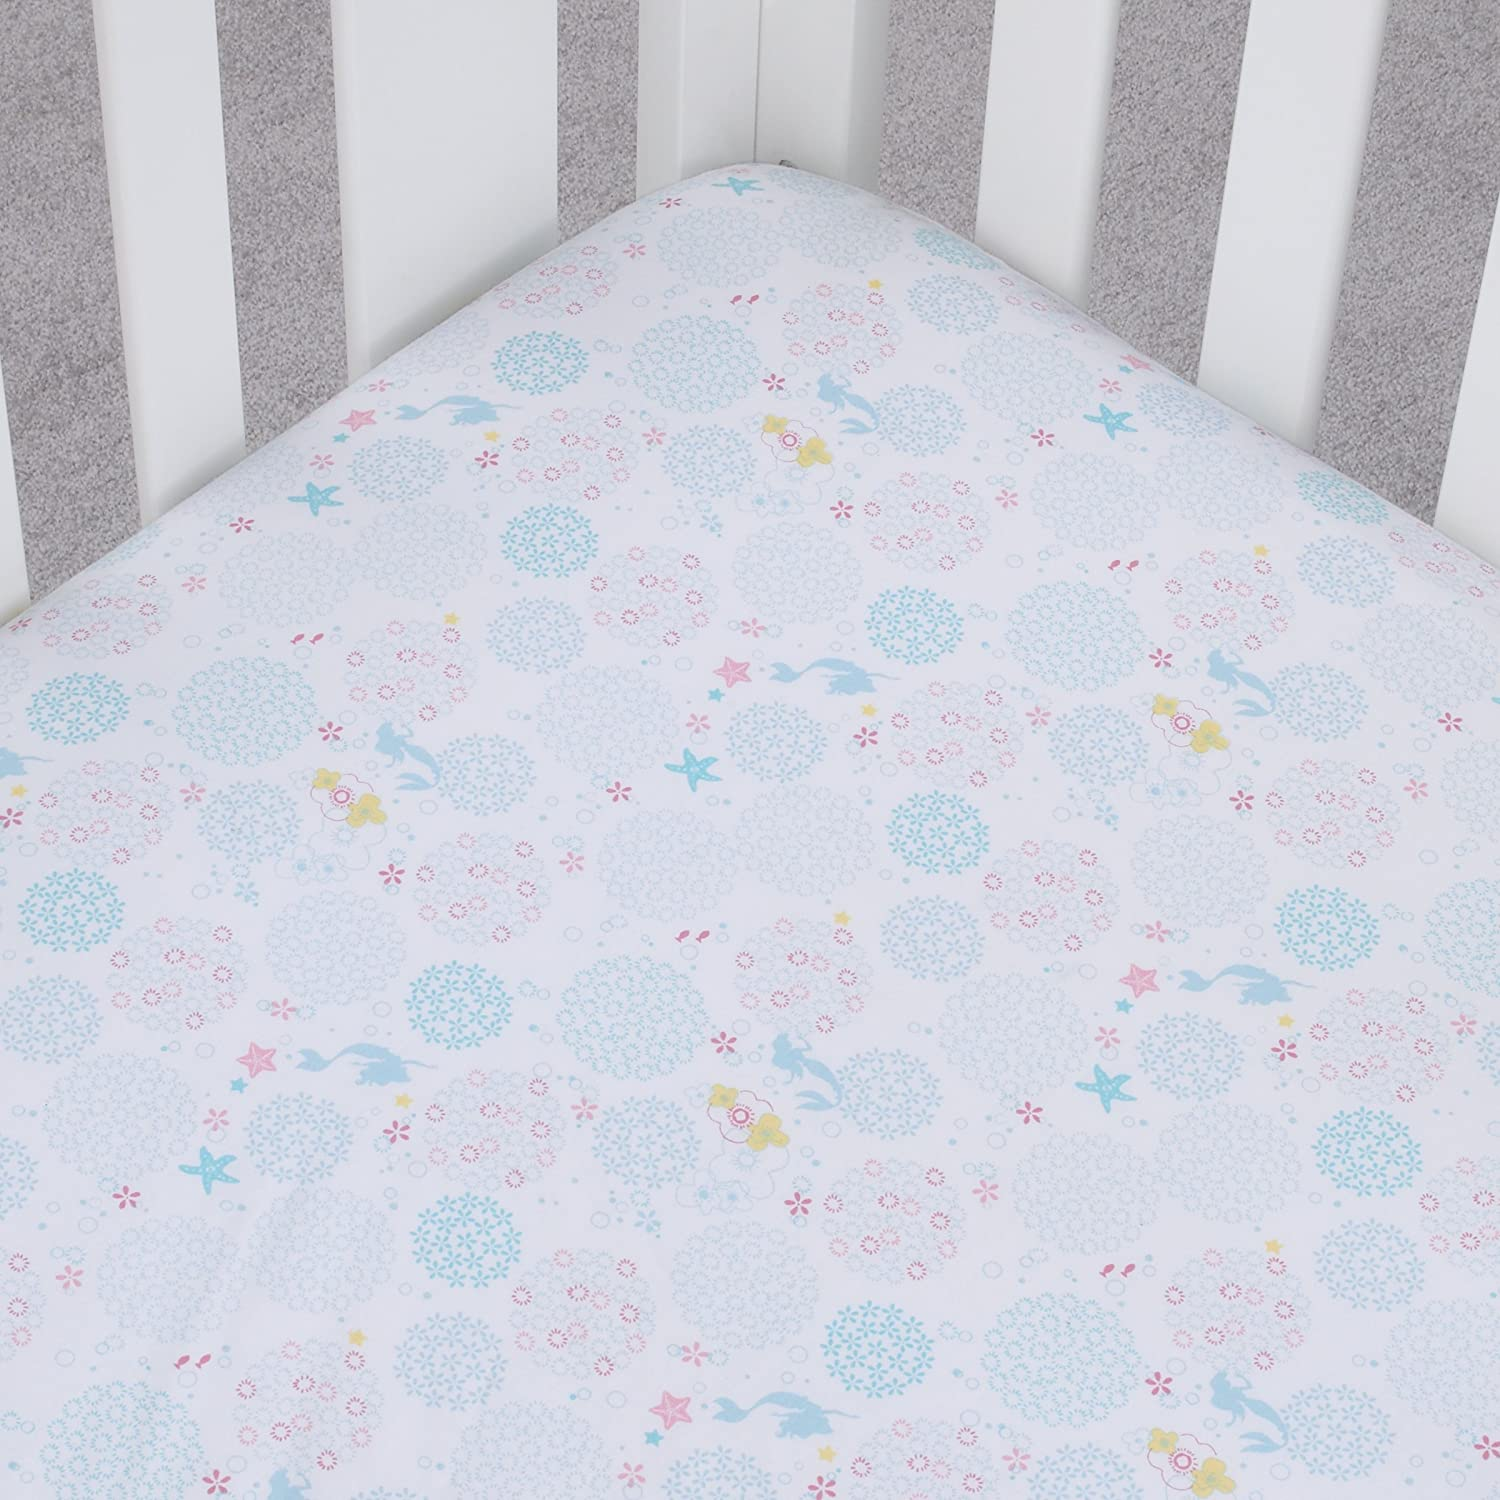 Ivory Disney Winnie the Pooh Classic Pooh 100/% Cotton Fitted Crib Sheet in Ivory Aqua Orange Butter Butter Aqua and Orange